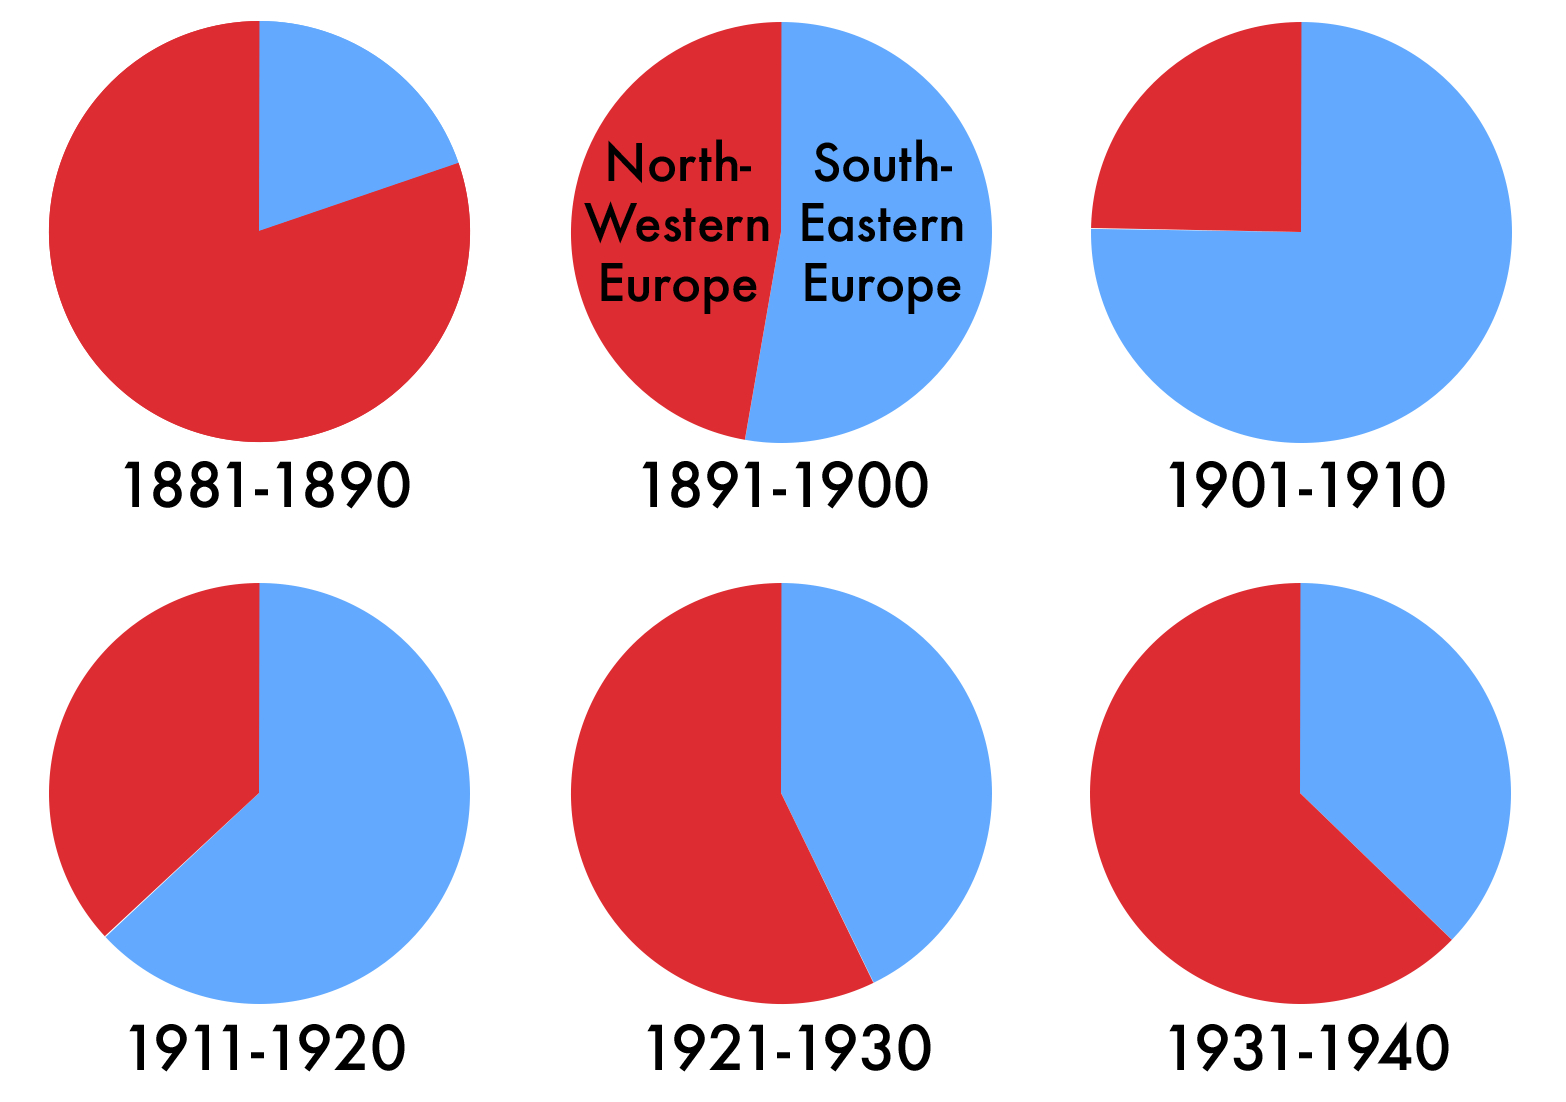 economy in ellis island era immigration of immigration shifted sharply to the south and east